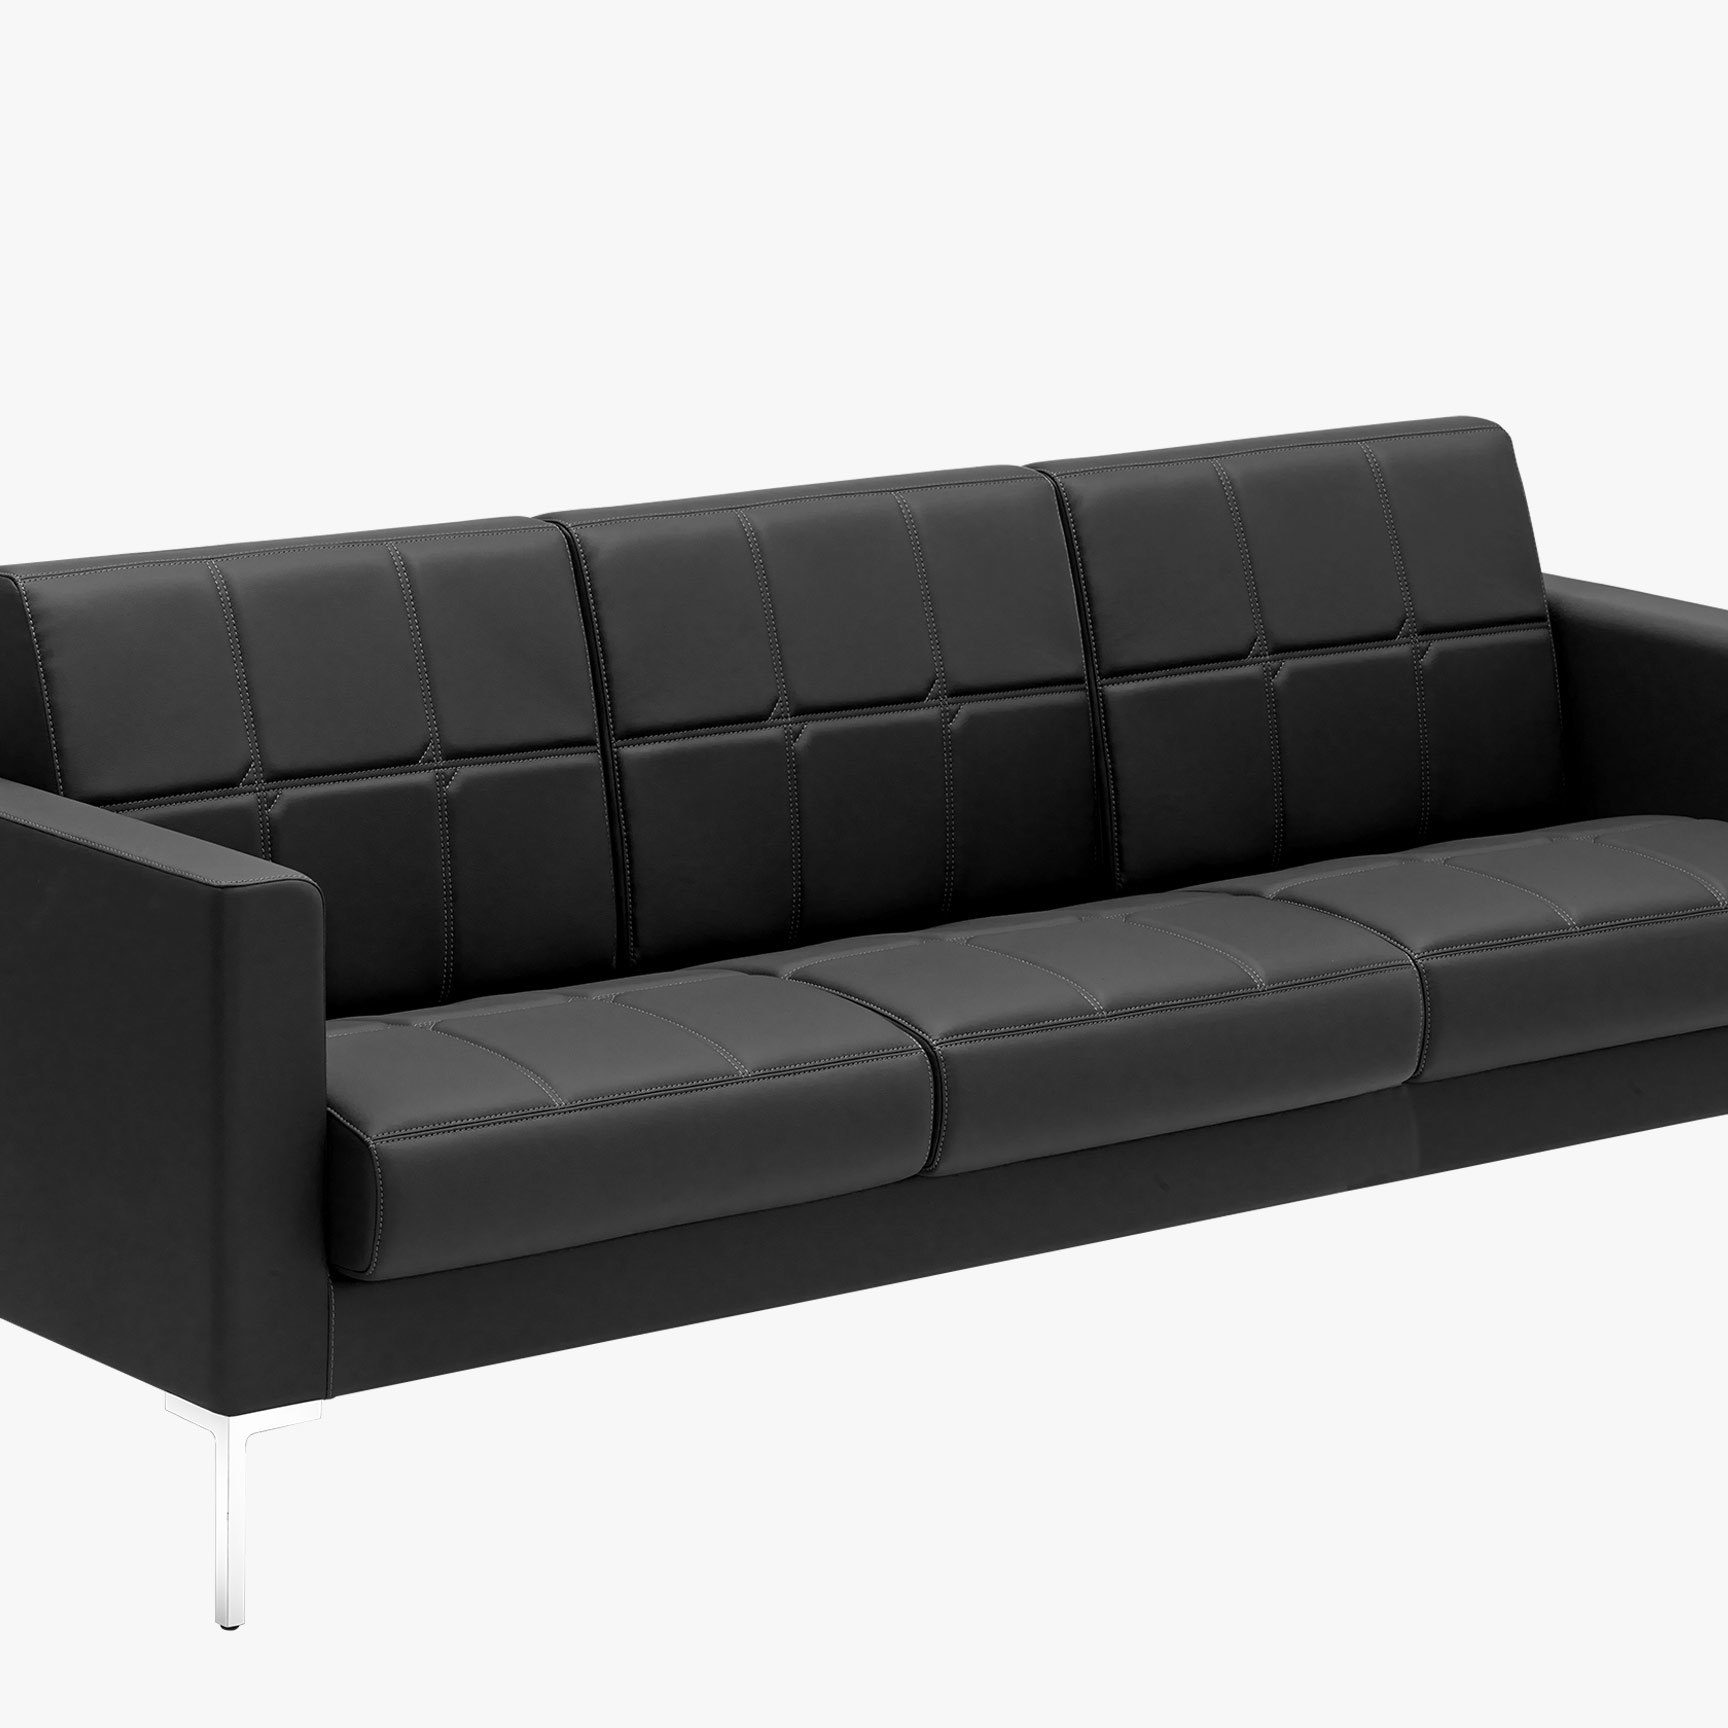 Canape 3 seater seat and back upholstery with square stiching